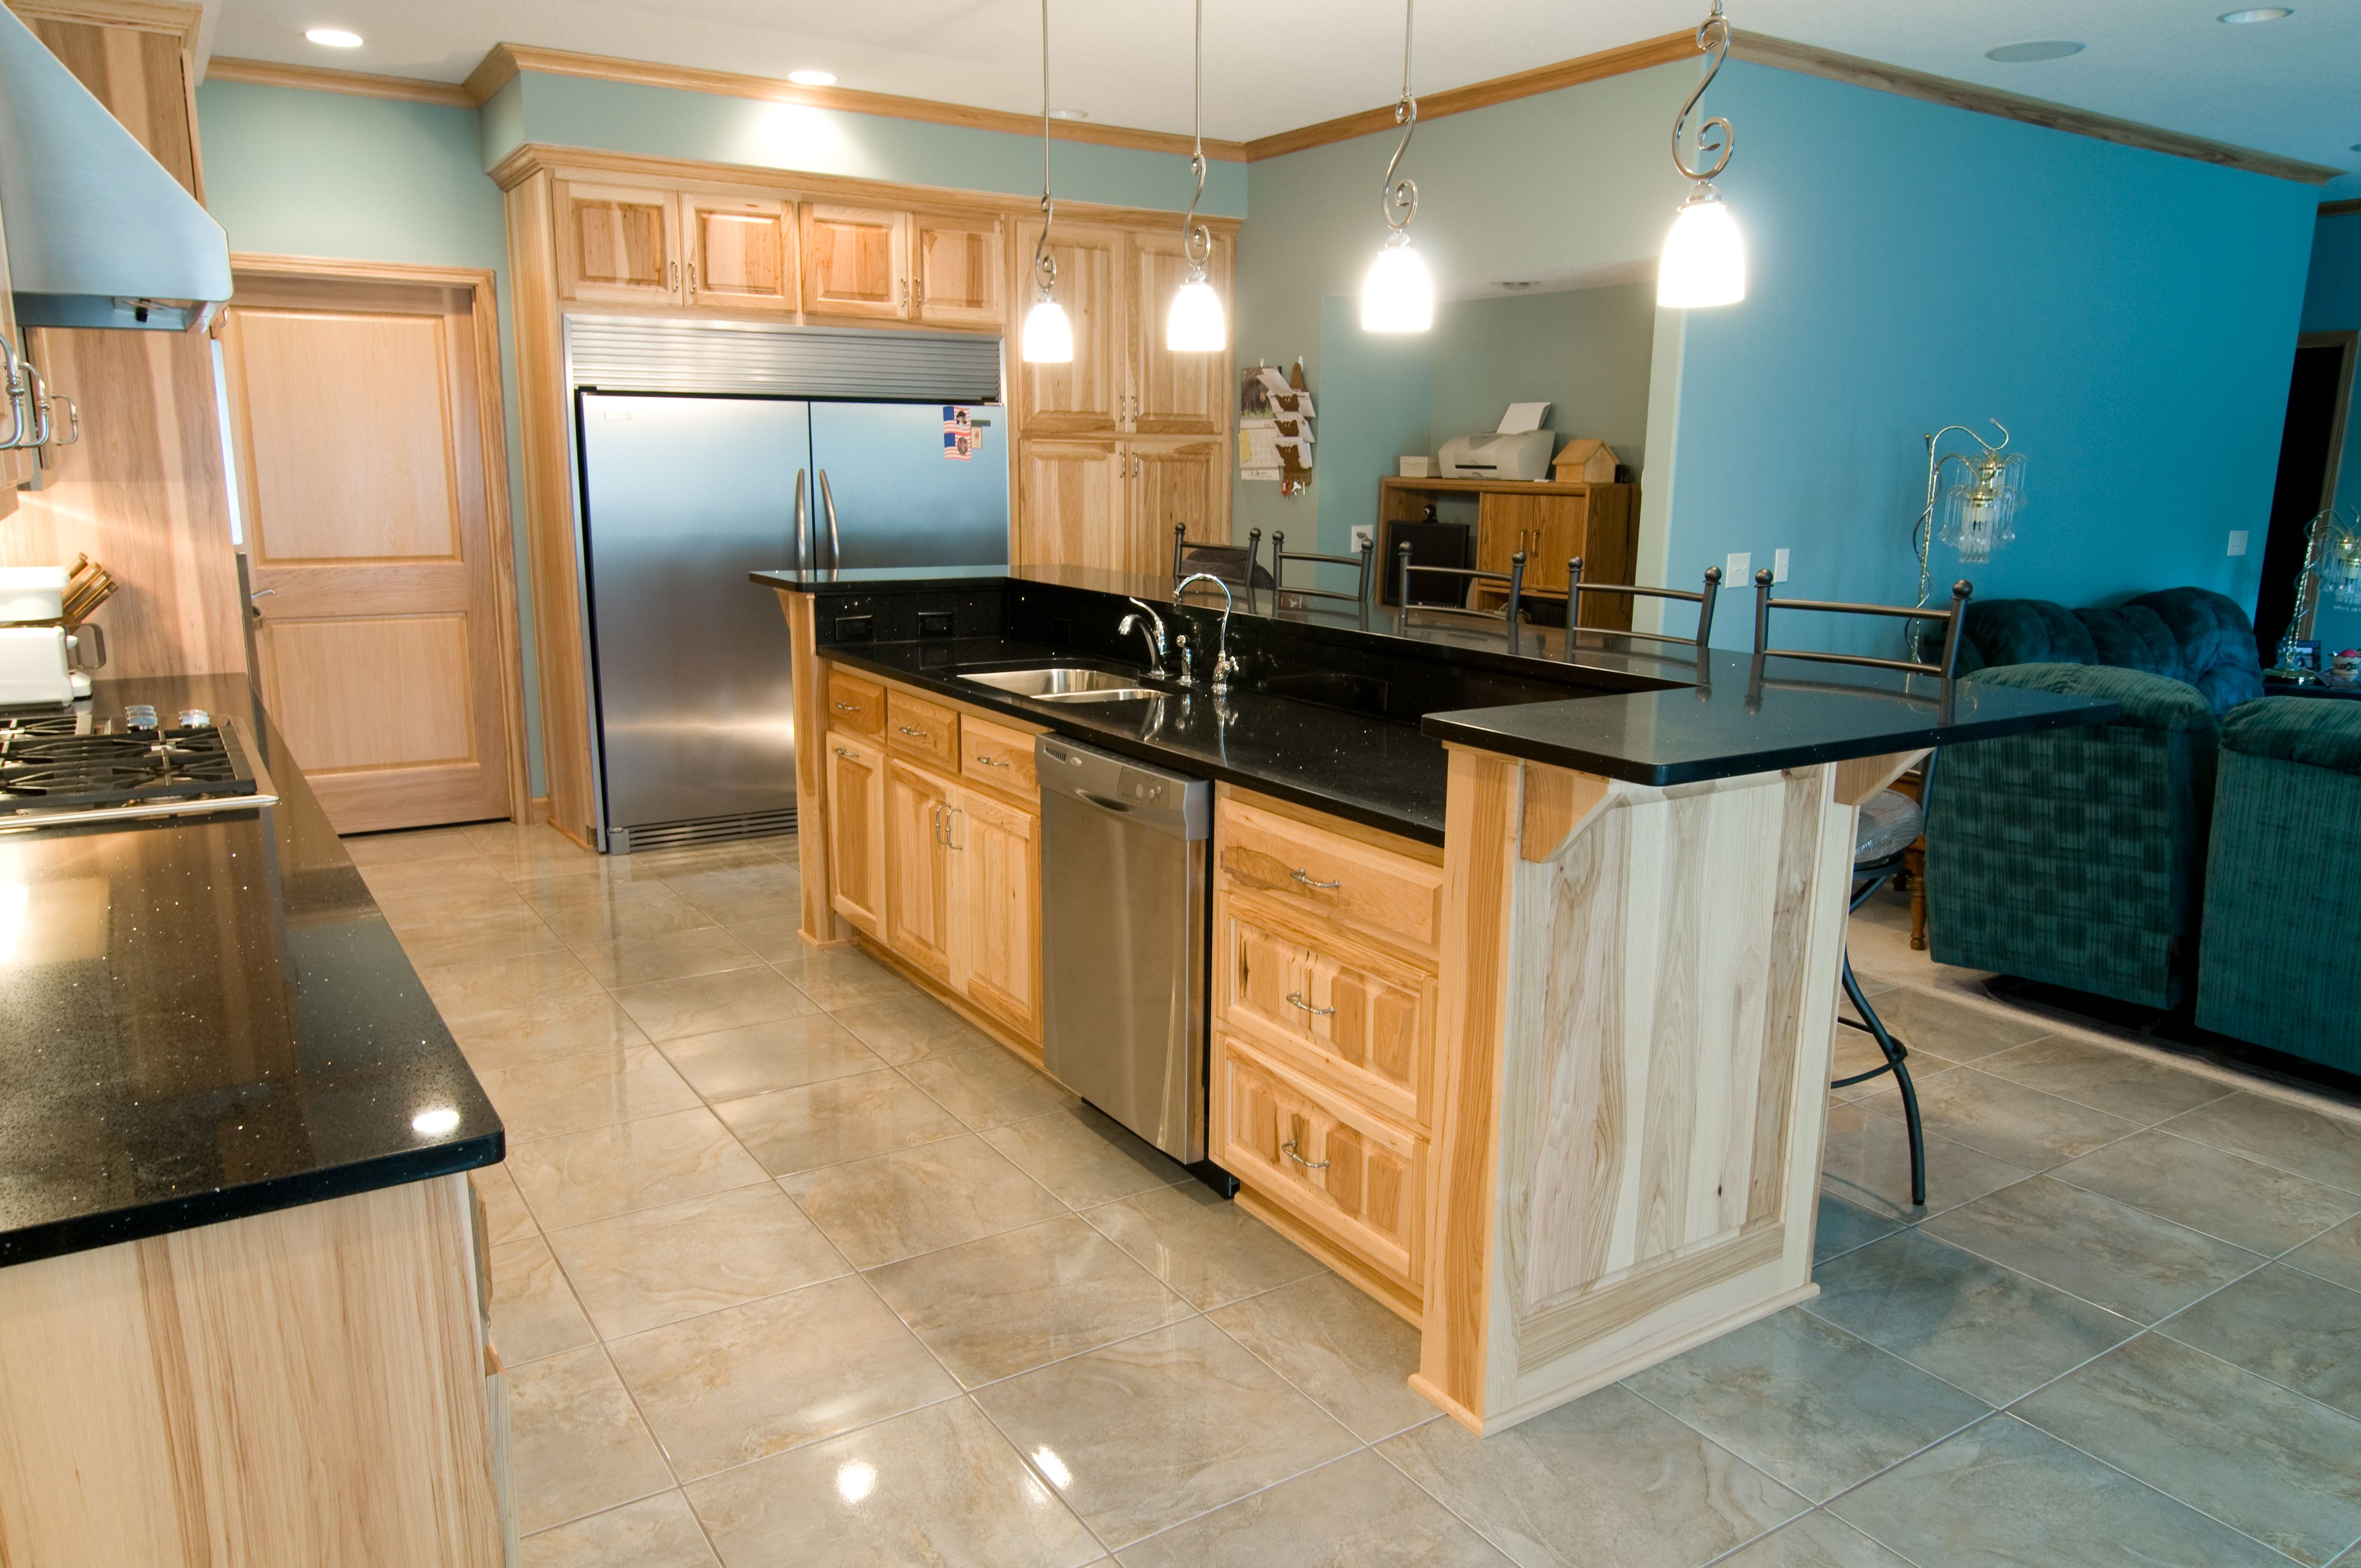 Best Hickory Cabinets Black Stone Countertops And A Light 400 x 300